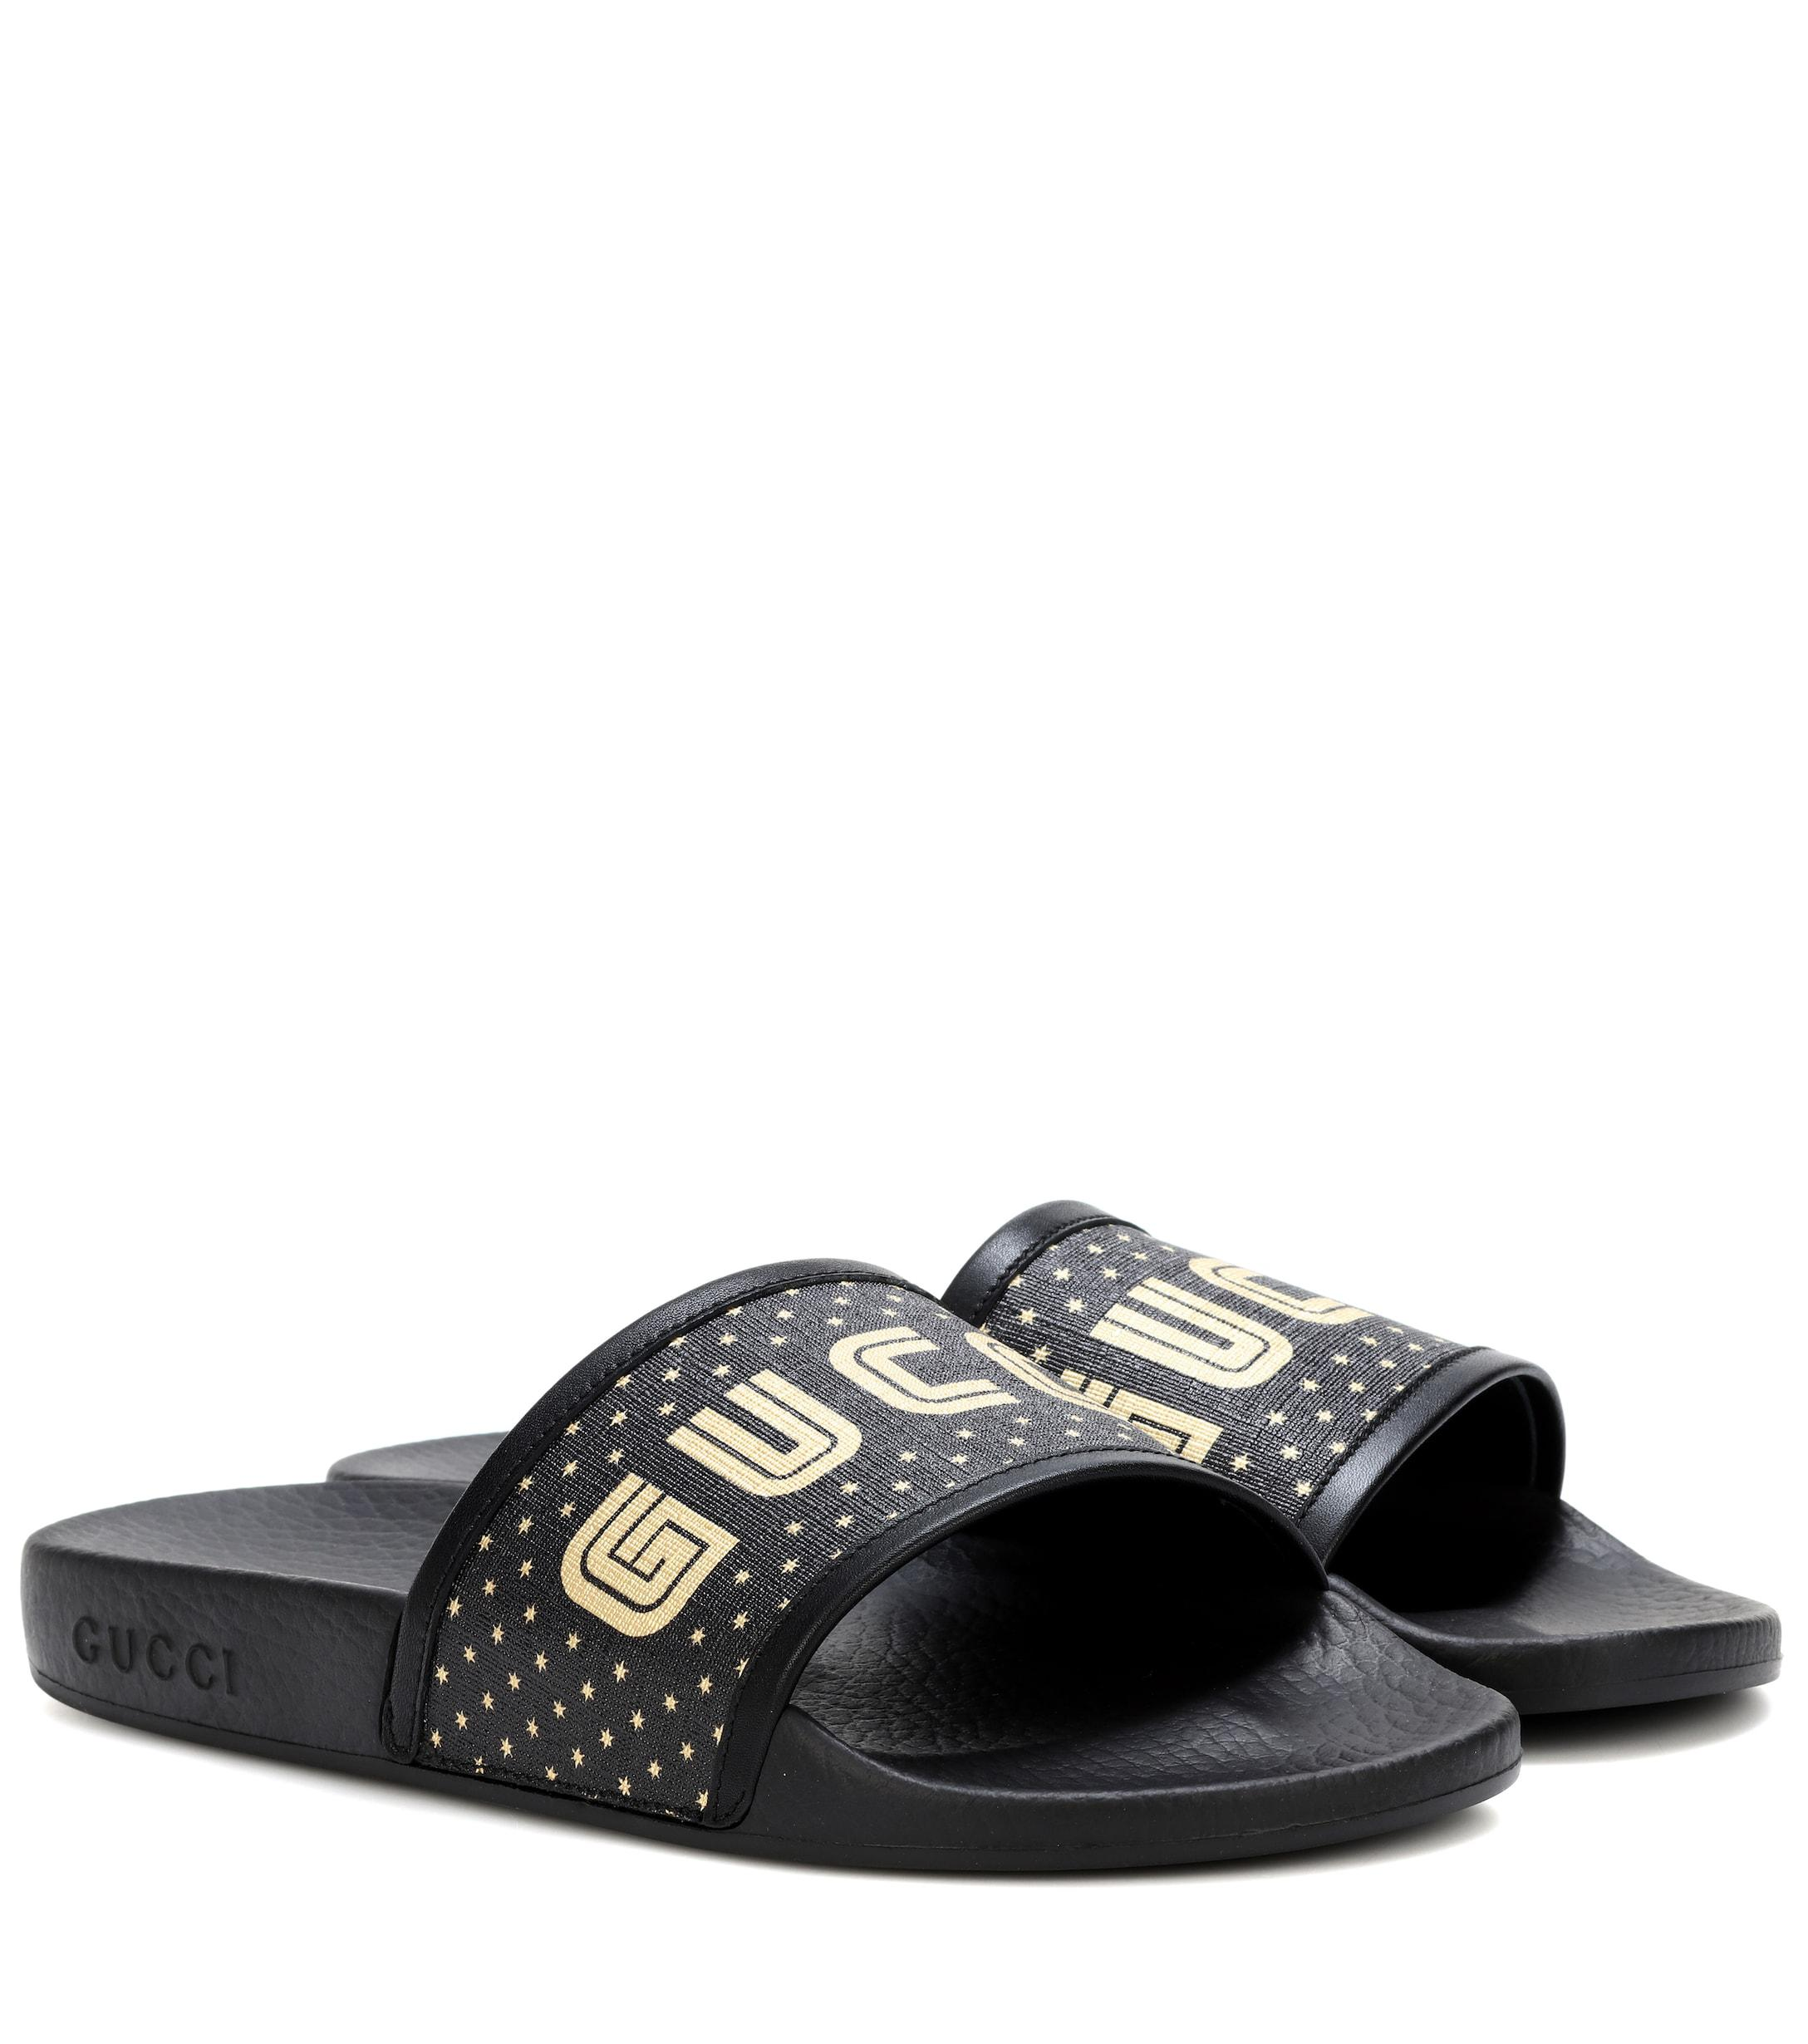 0eb85207c0b Gucci Logo Slides in Black - Lyst